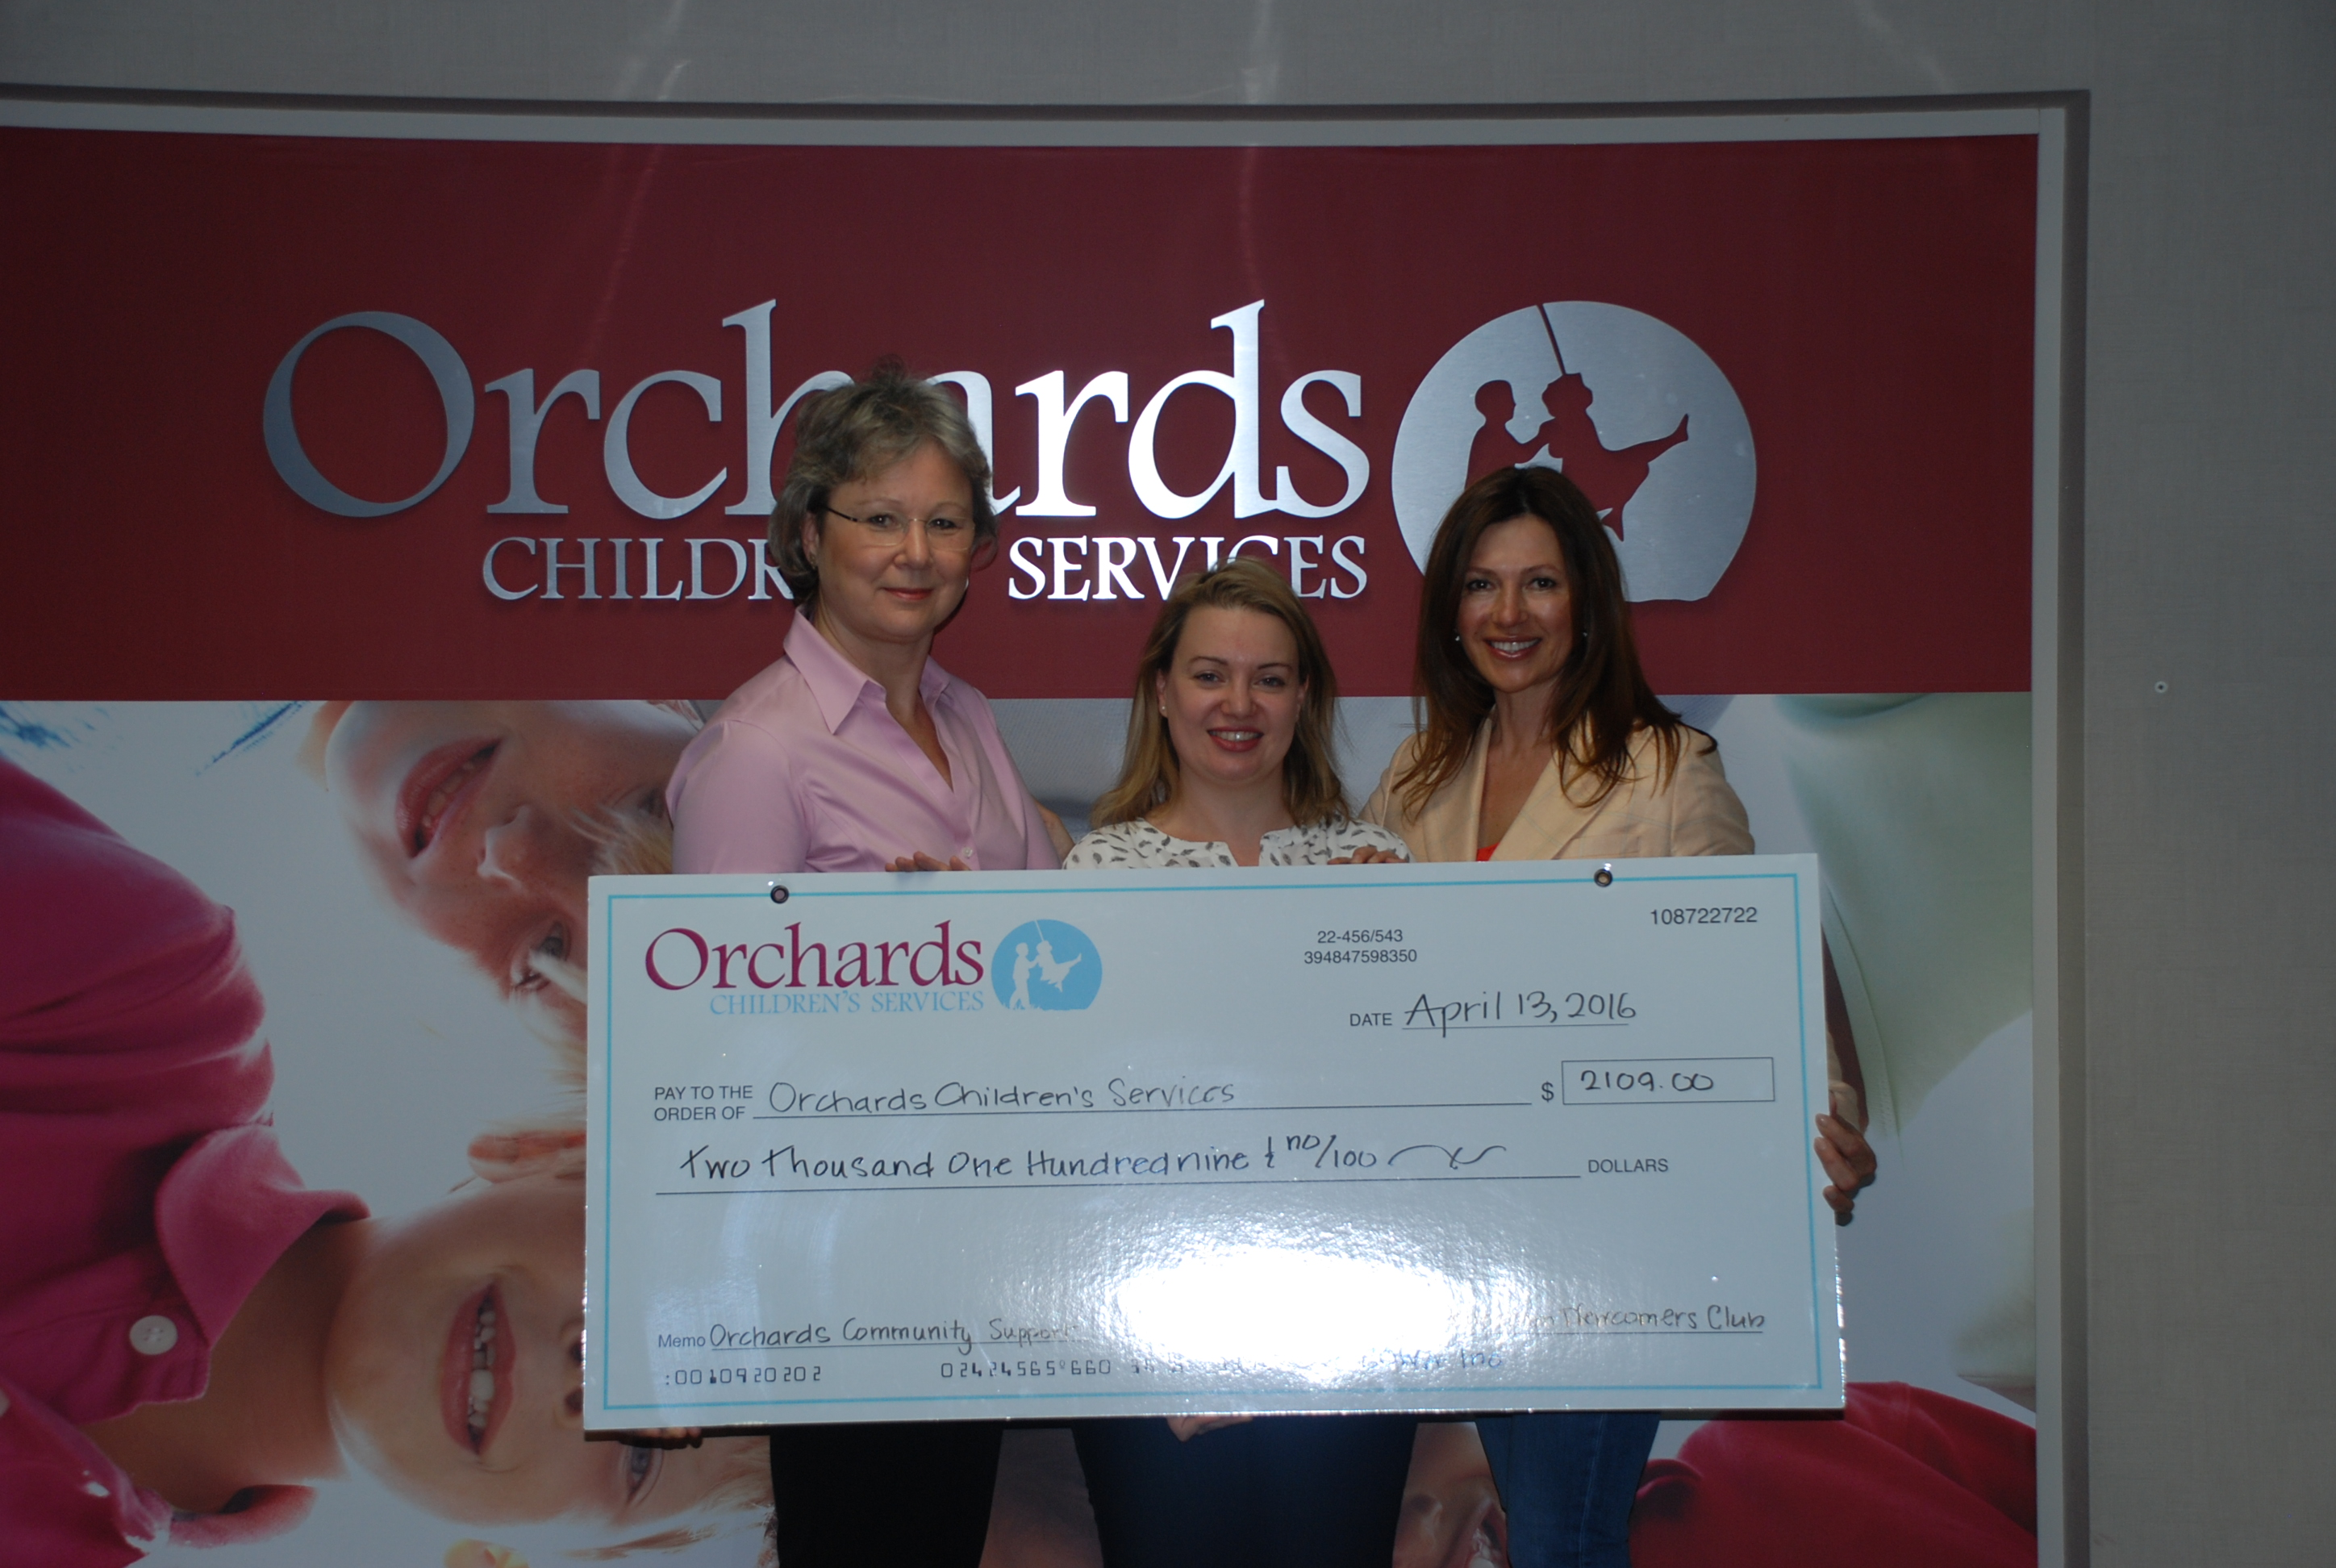 Donation to Orchards Children